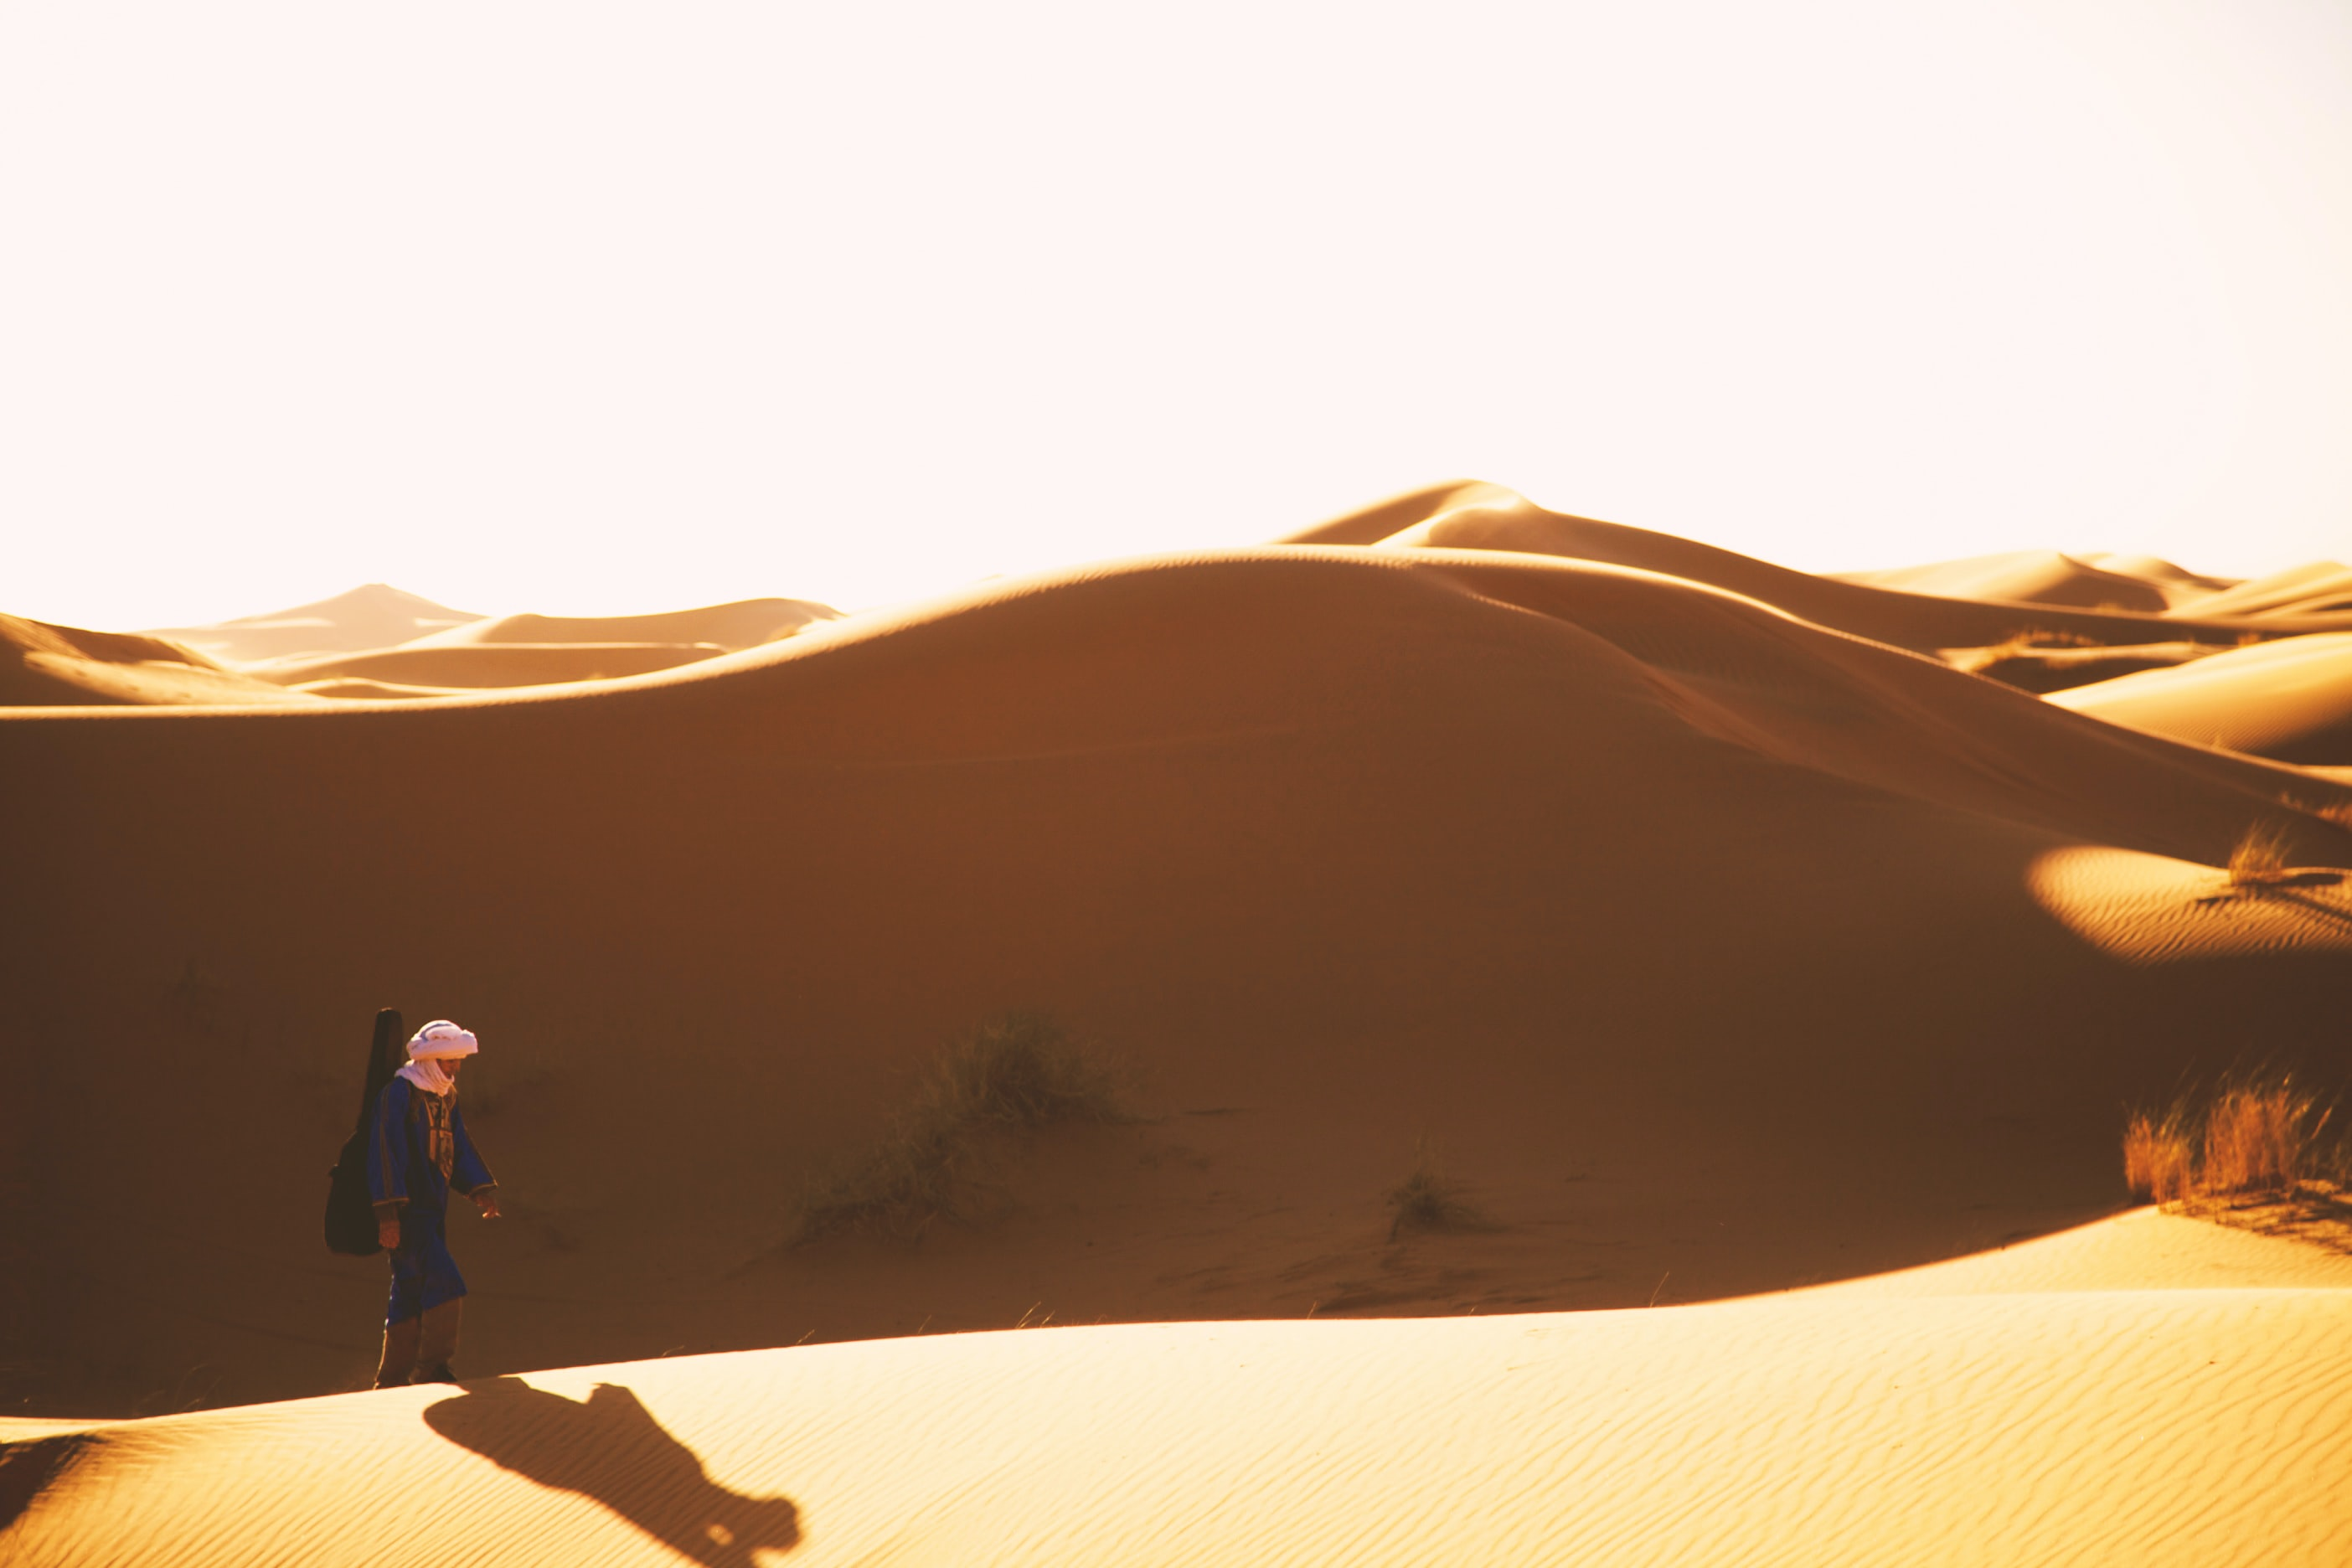 man walking on desert at daytime